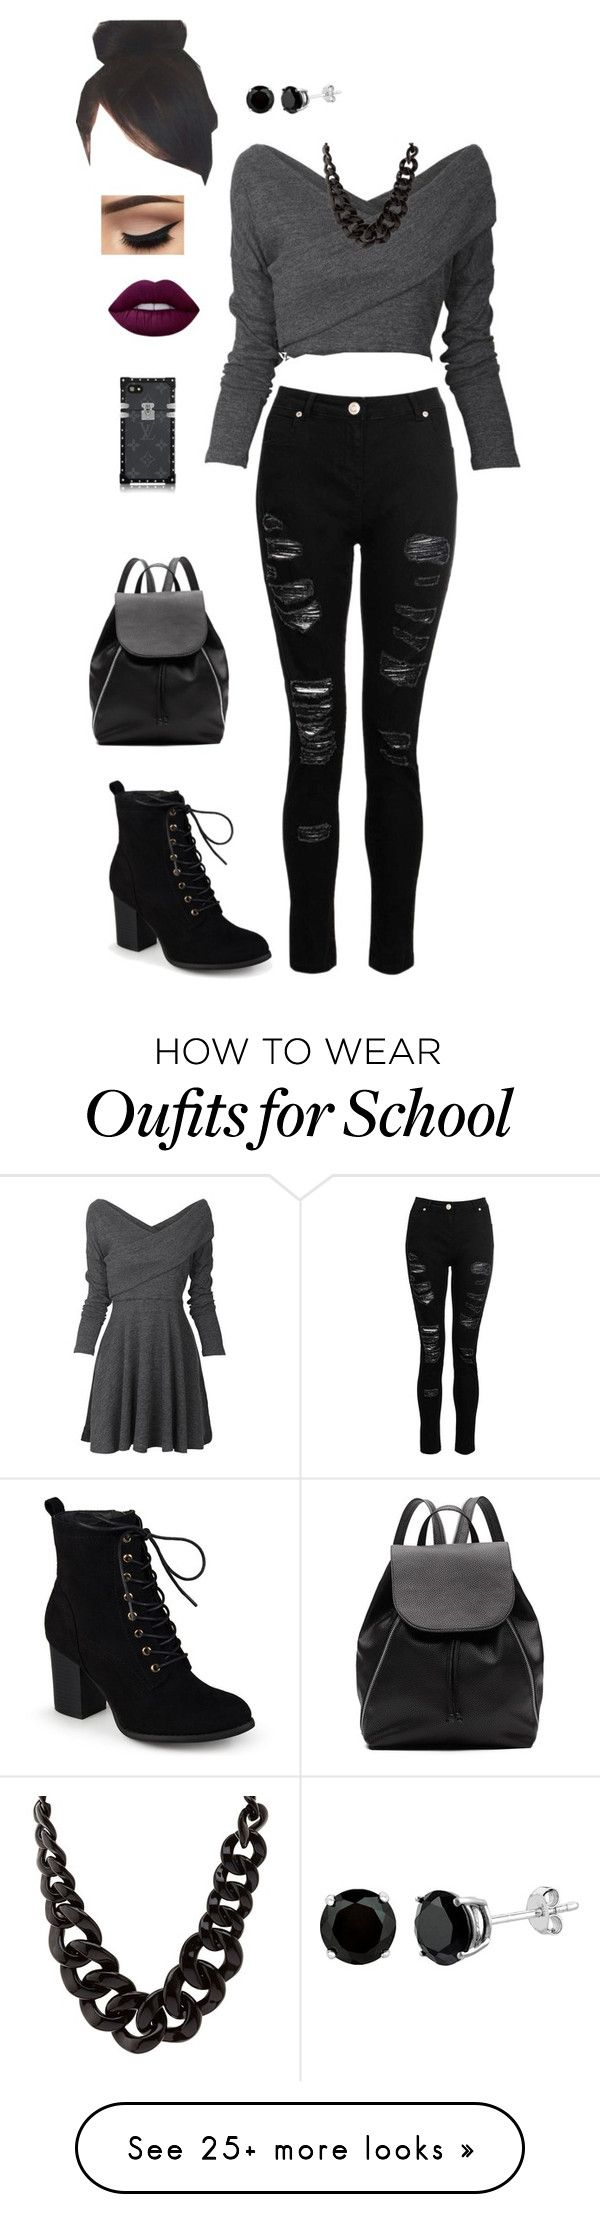 25+ best ideas about Rebel fashion on Pinterest | Punk outfits Rebel style and Punk style clothes